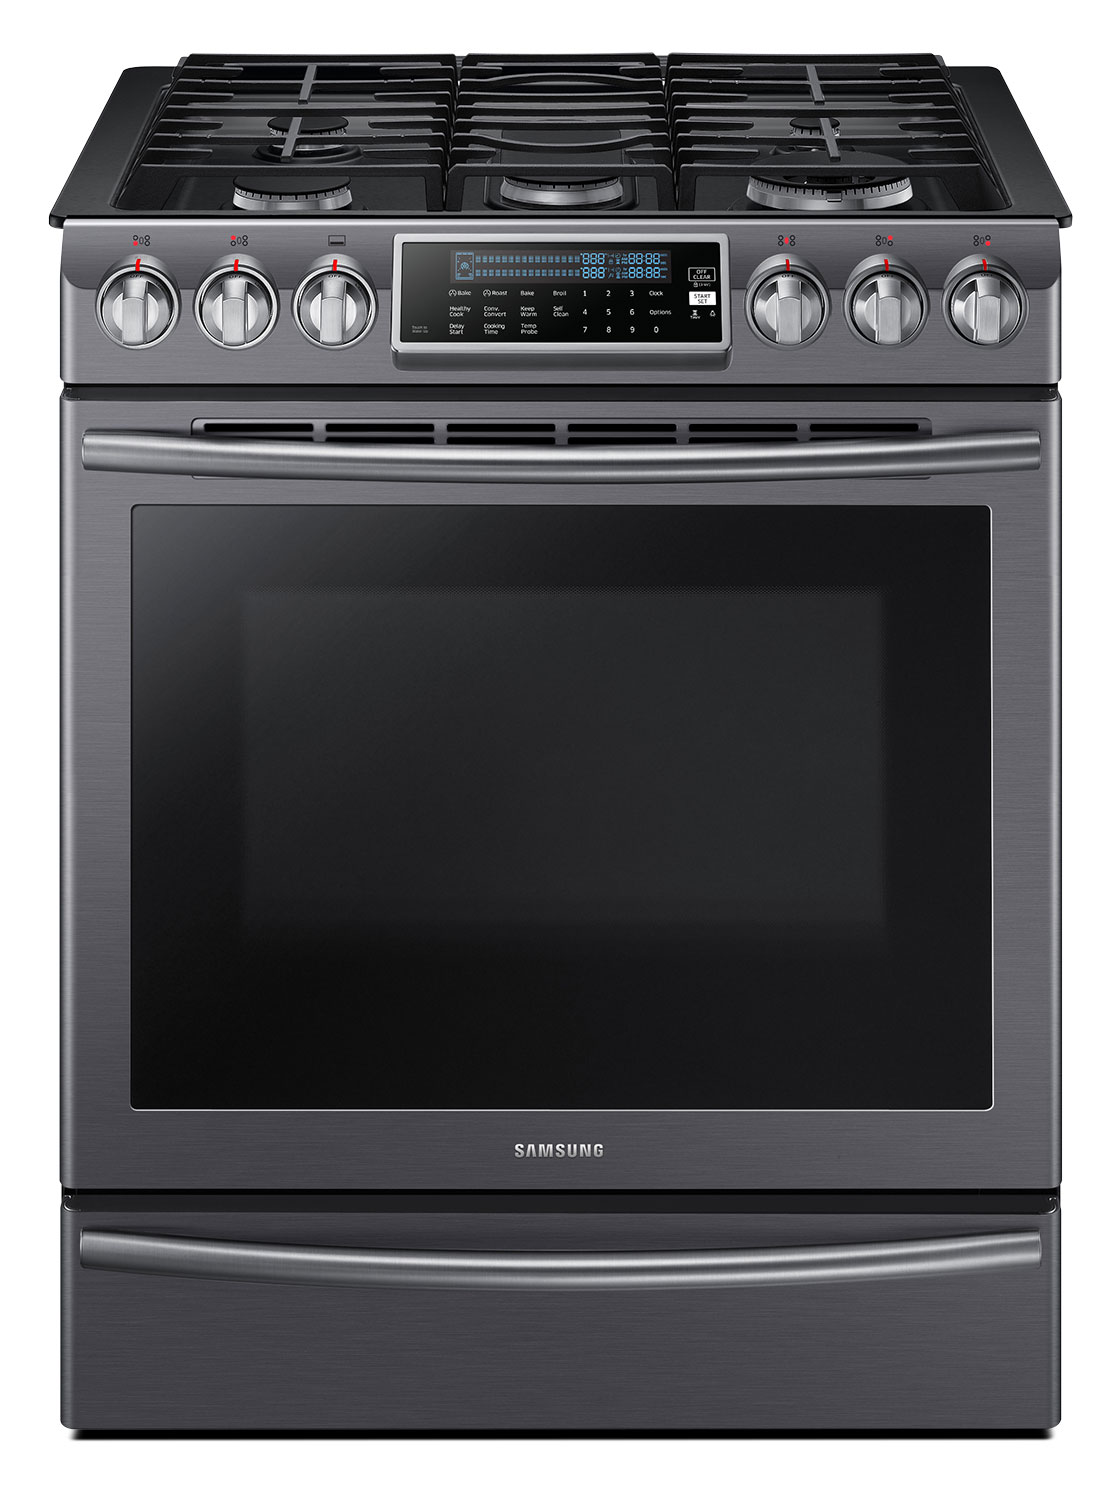 Samsung 5.8 Cu. Ft. Slide-In Gas Range – NX58K9500WG